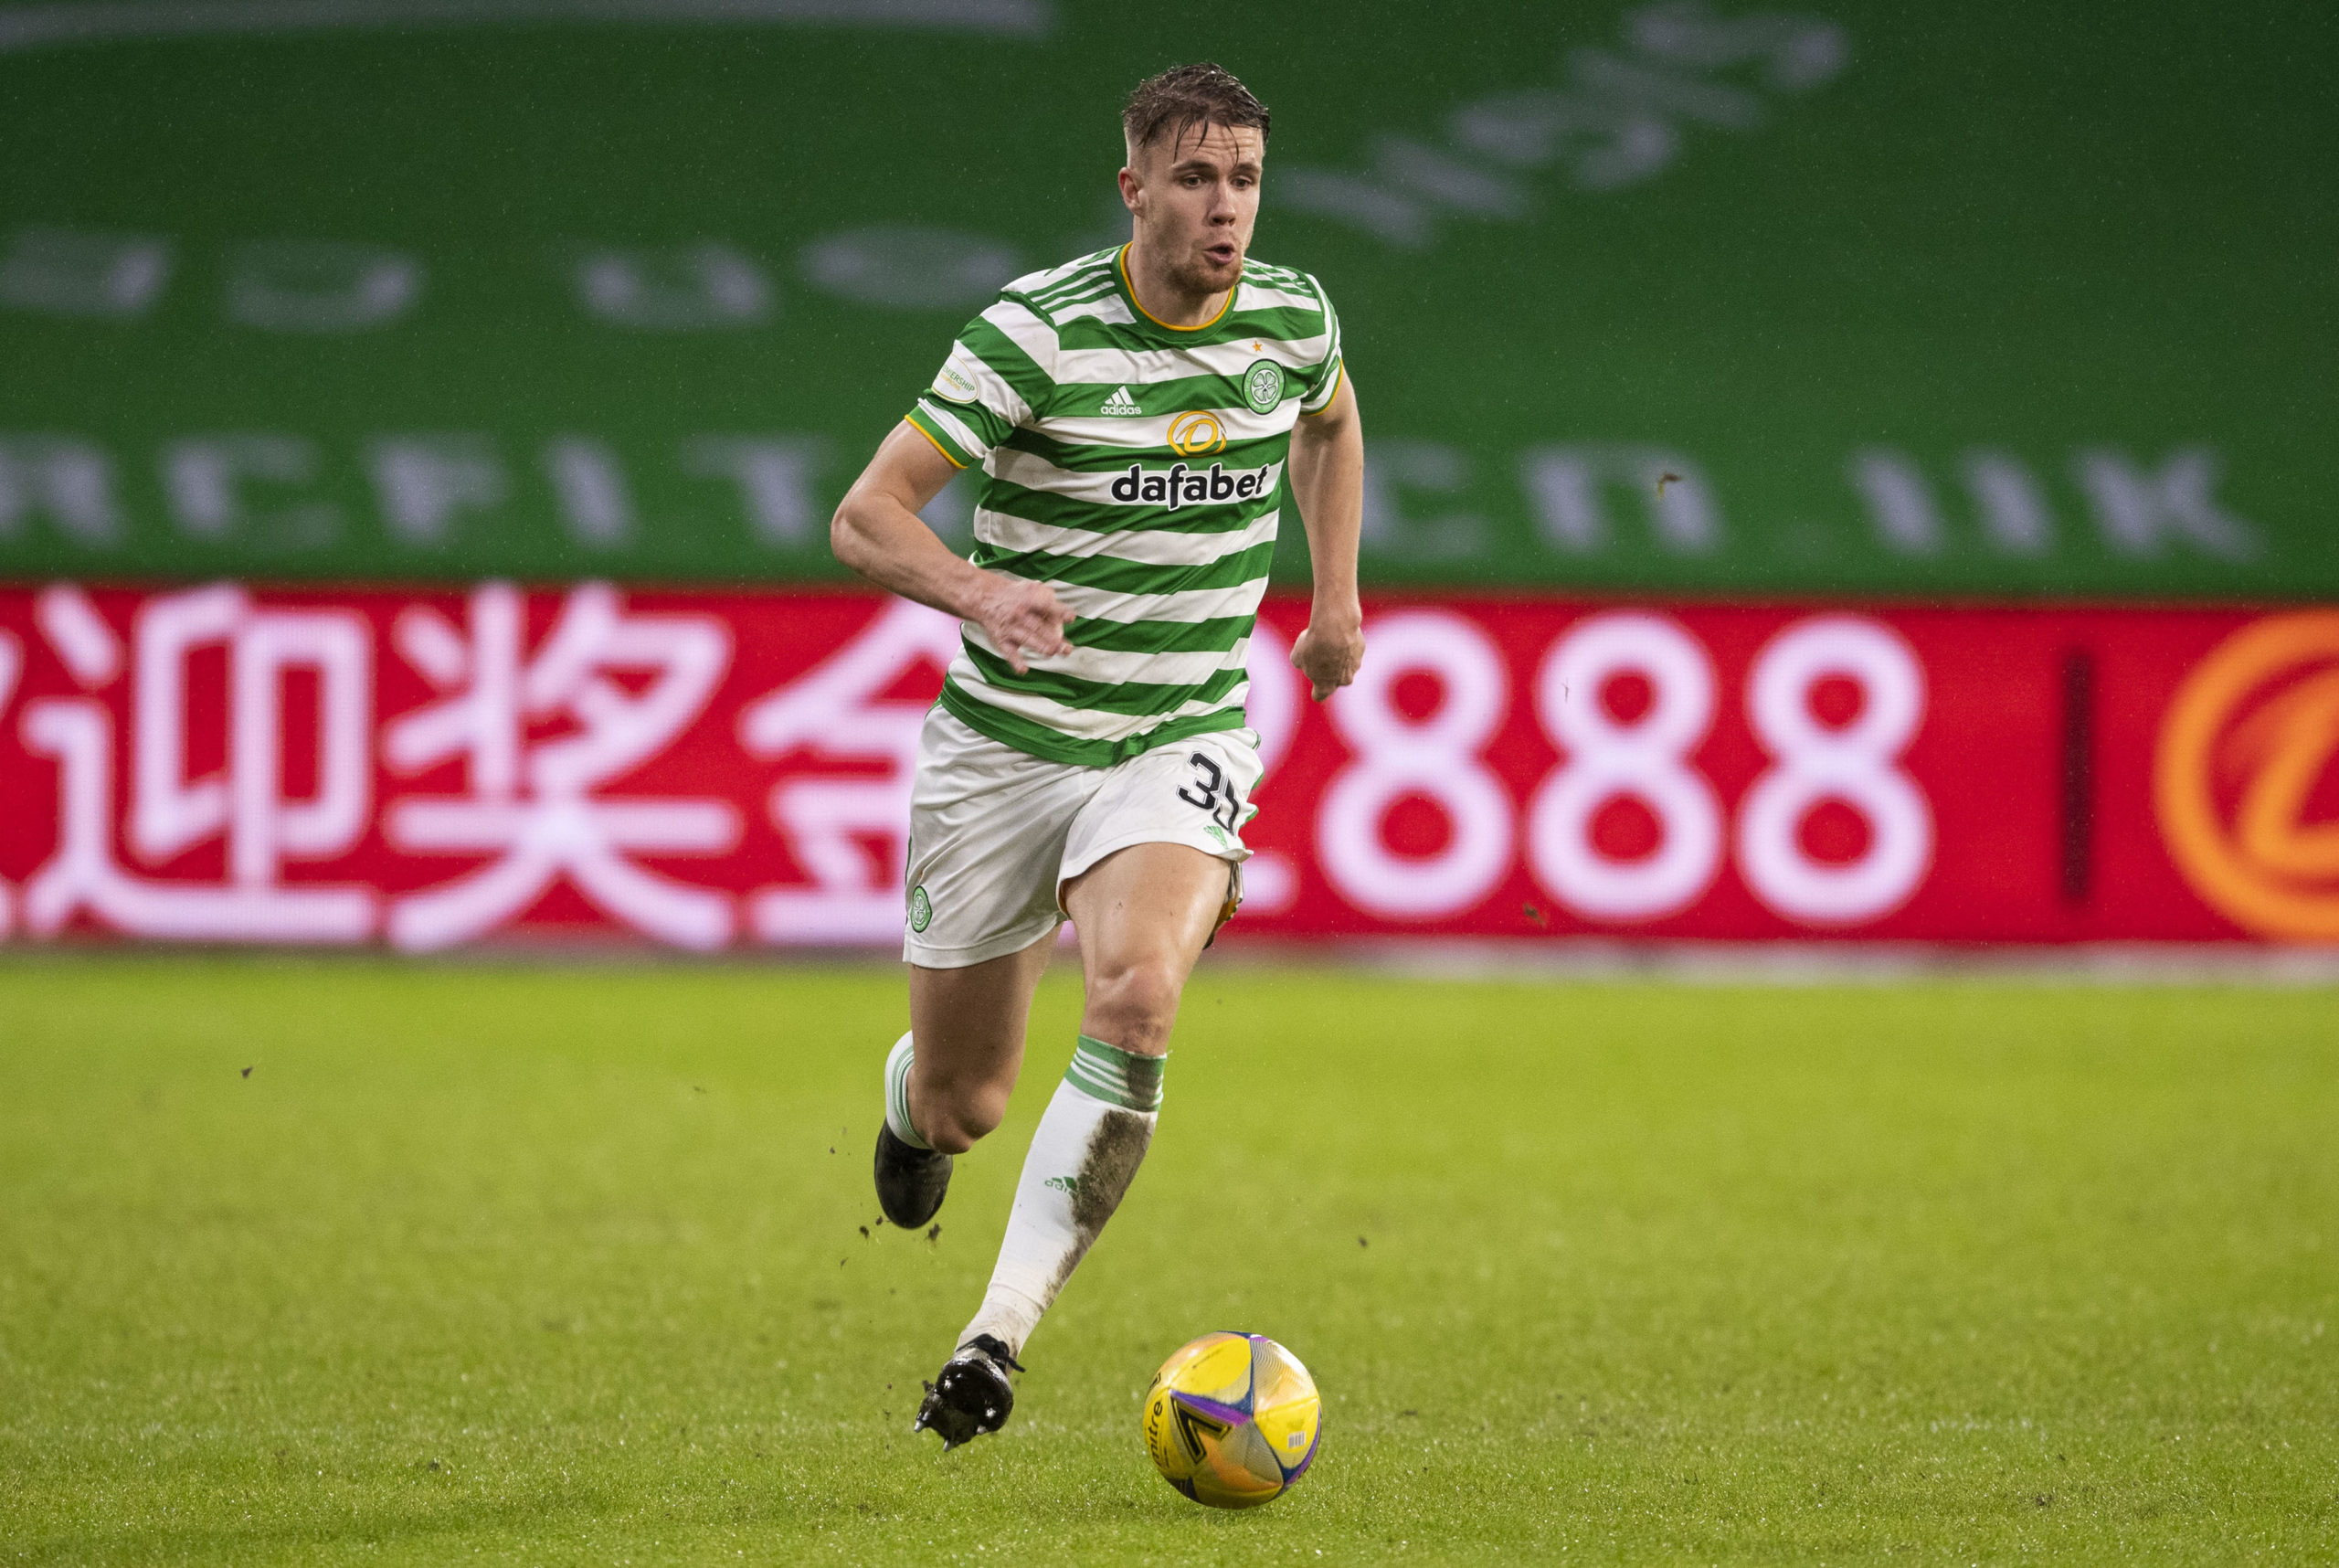 Celtic defender Kristoffer Ajer stars at right-back vs Kilmarnock